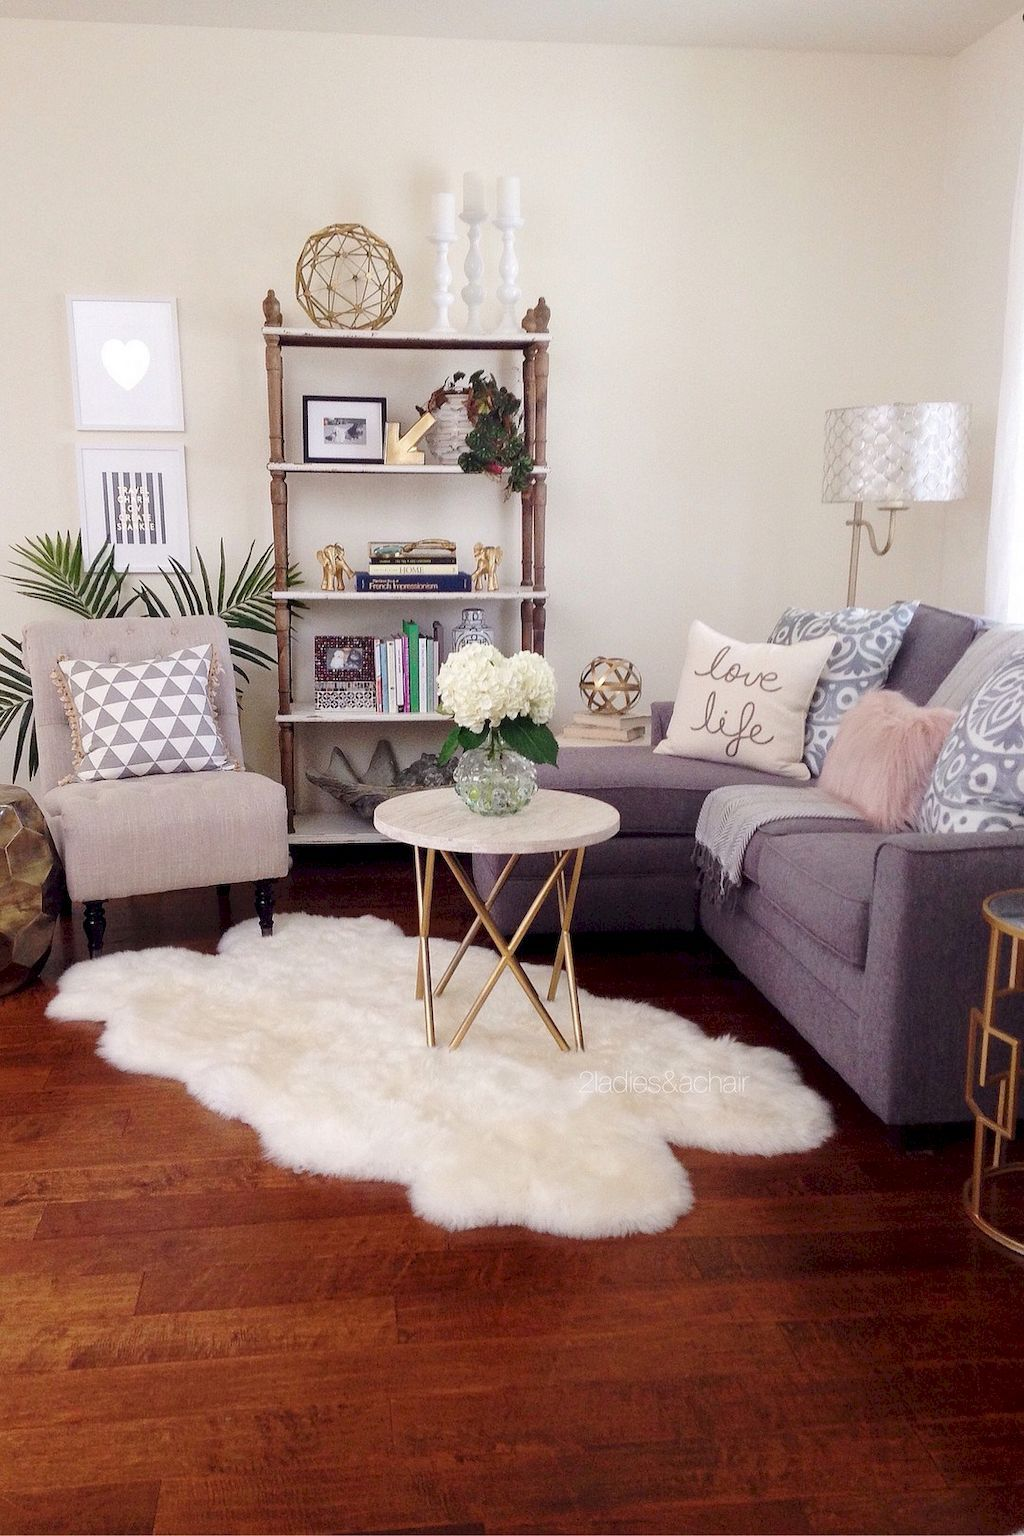 Awesome 60 Awesome DIY First Apartment Decorating